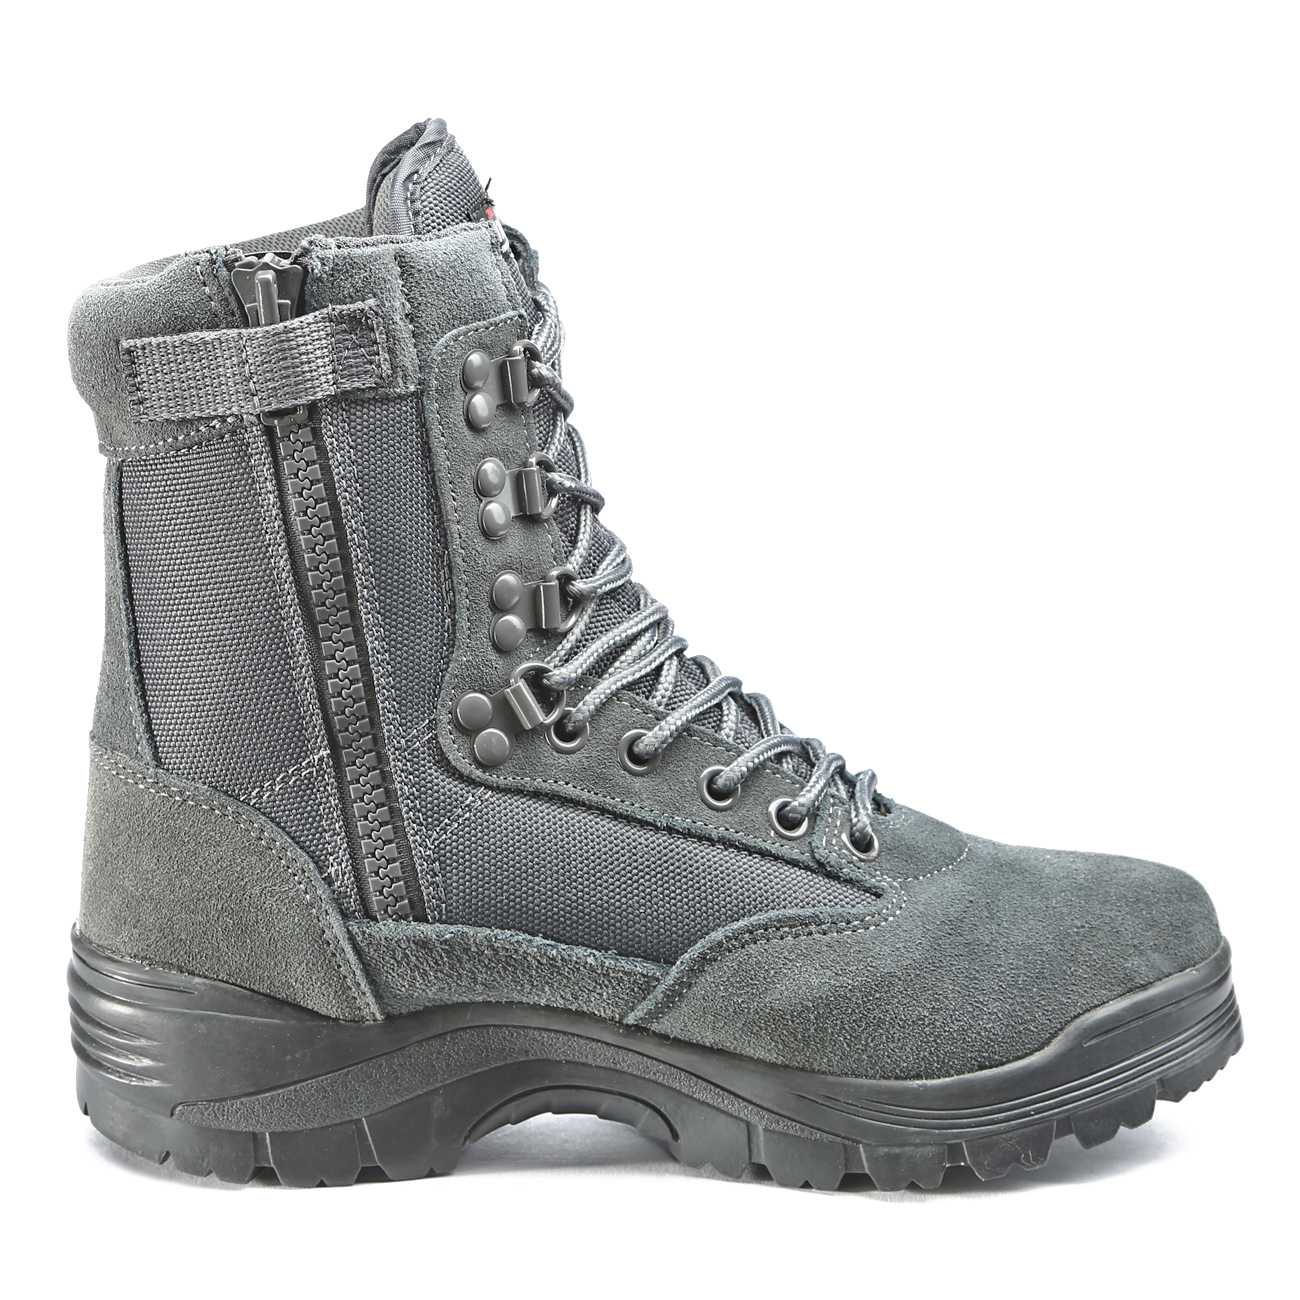 Mil-Tec Stiefel Tactical Boots YKK-Zipper urban grey 4